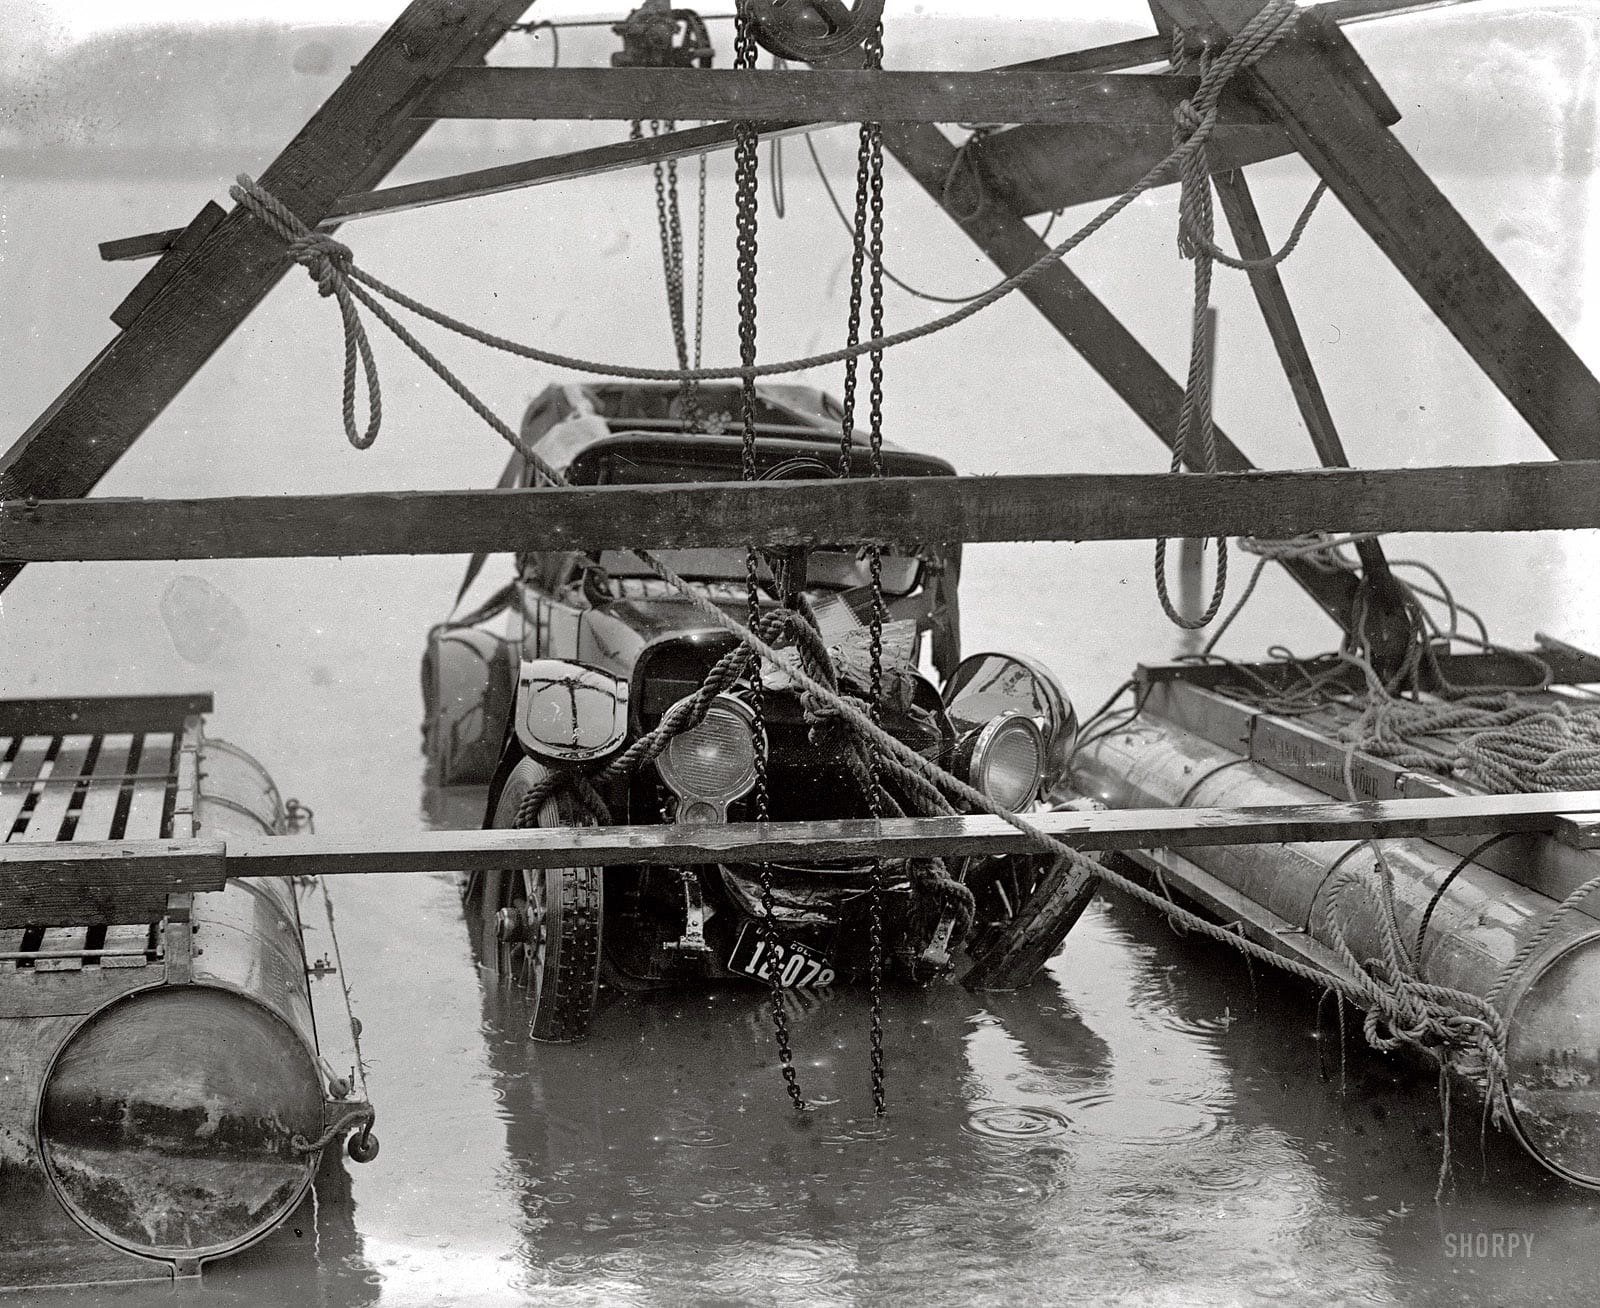 """""""Auto wreck. December 31, 1923."""" Continuing this week's theme of vehicular mishaps on (and off) the roads of Washington, D.C. On New Year's Eve, this car was in the drink. See the comments for details about this fatal accident in the Tidal Basin. National Photo Company Collection glass negative."""